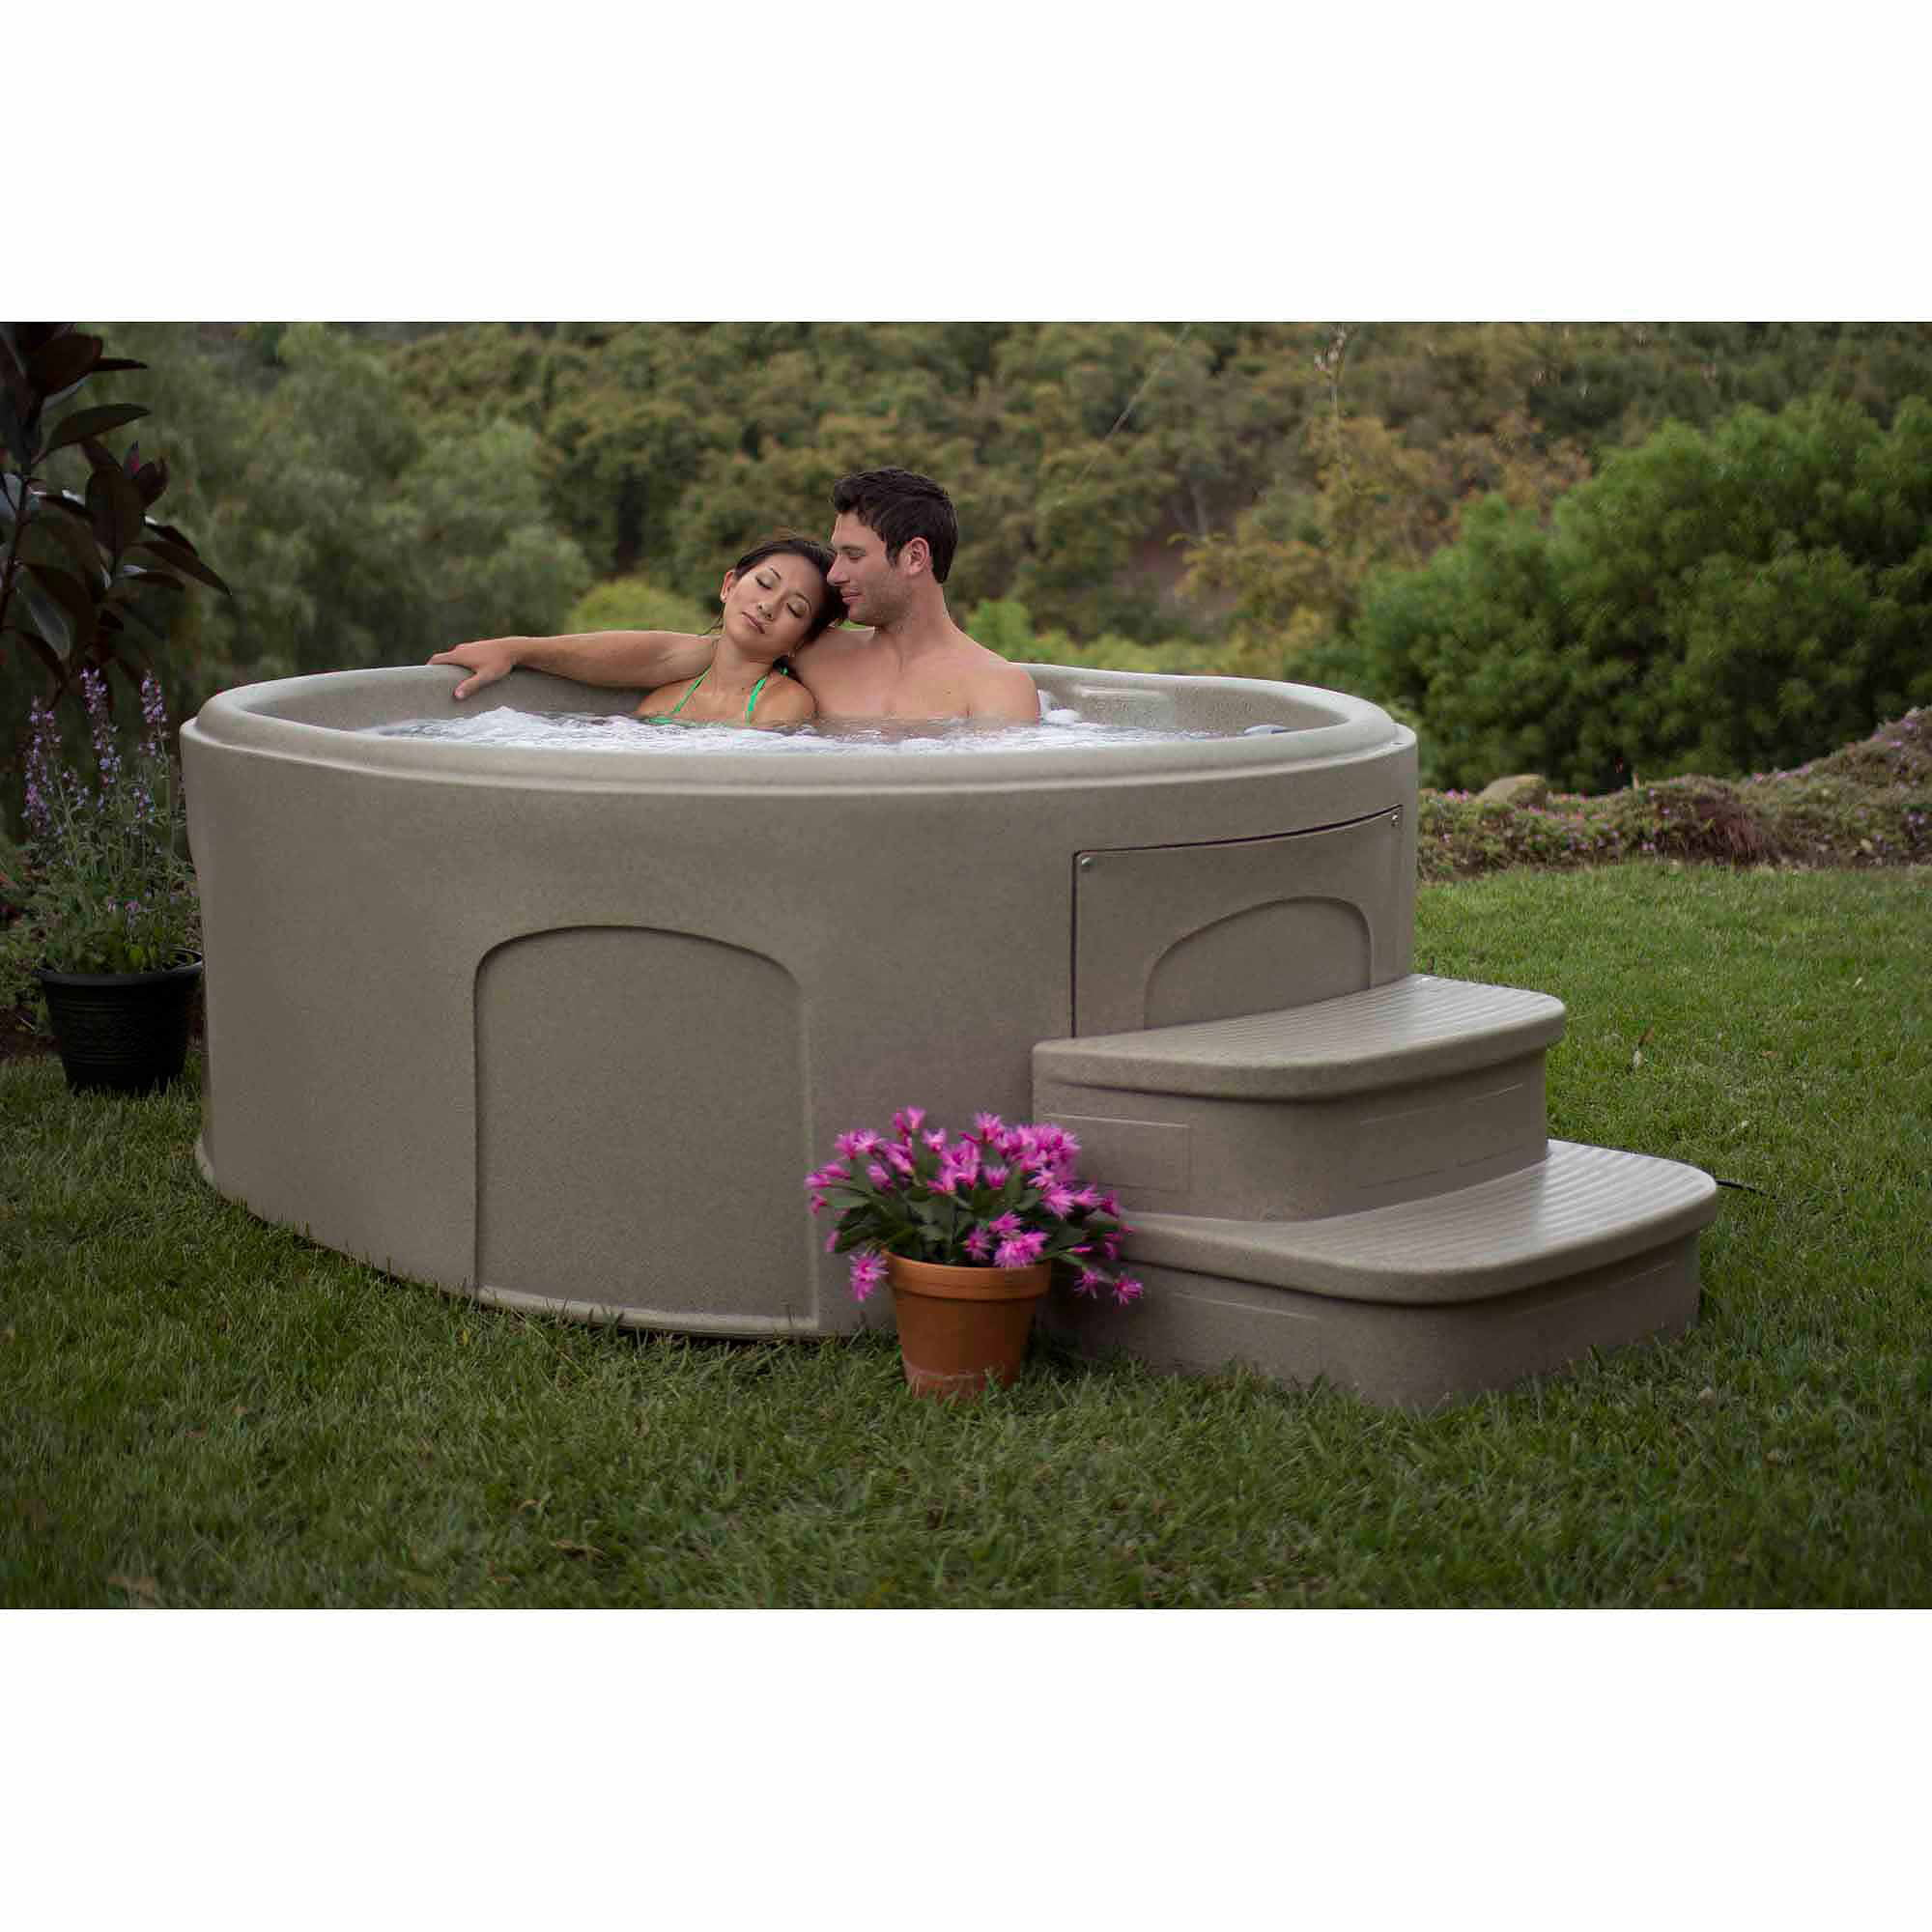 Coleman SaluSpa 6 Person Inflatable Outdoor Spa Jacuzzi Bubble ...